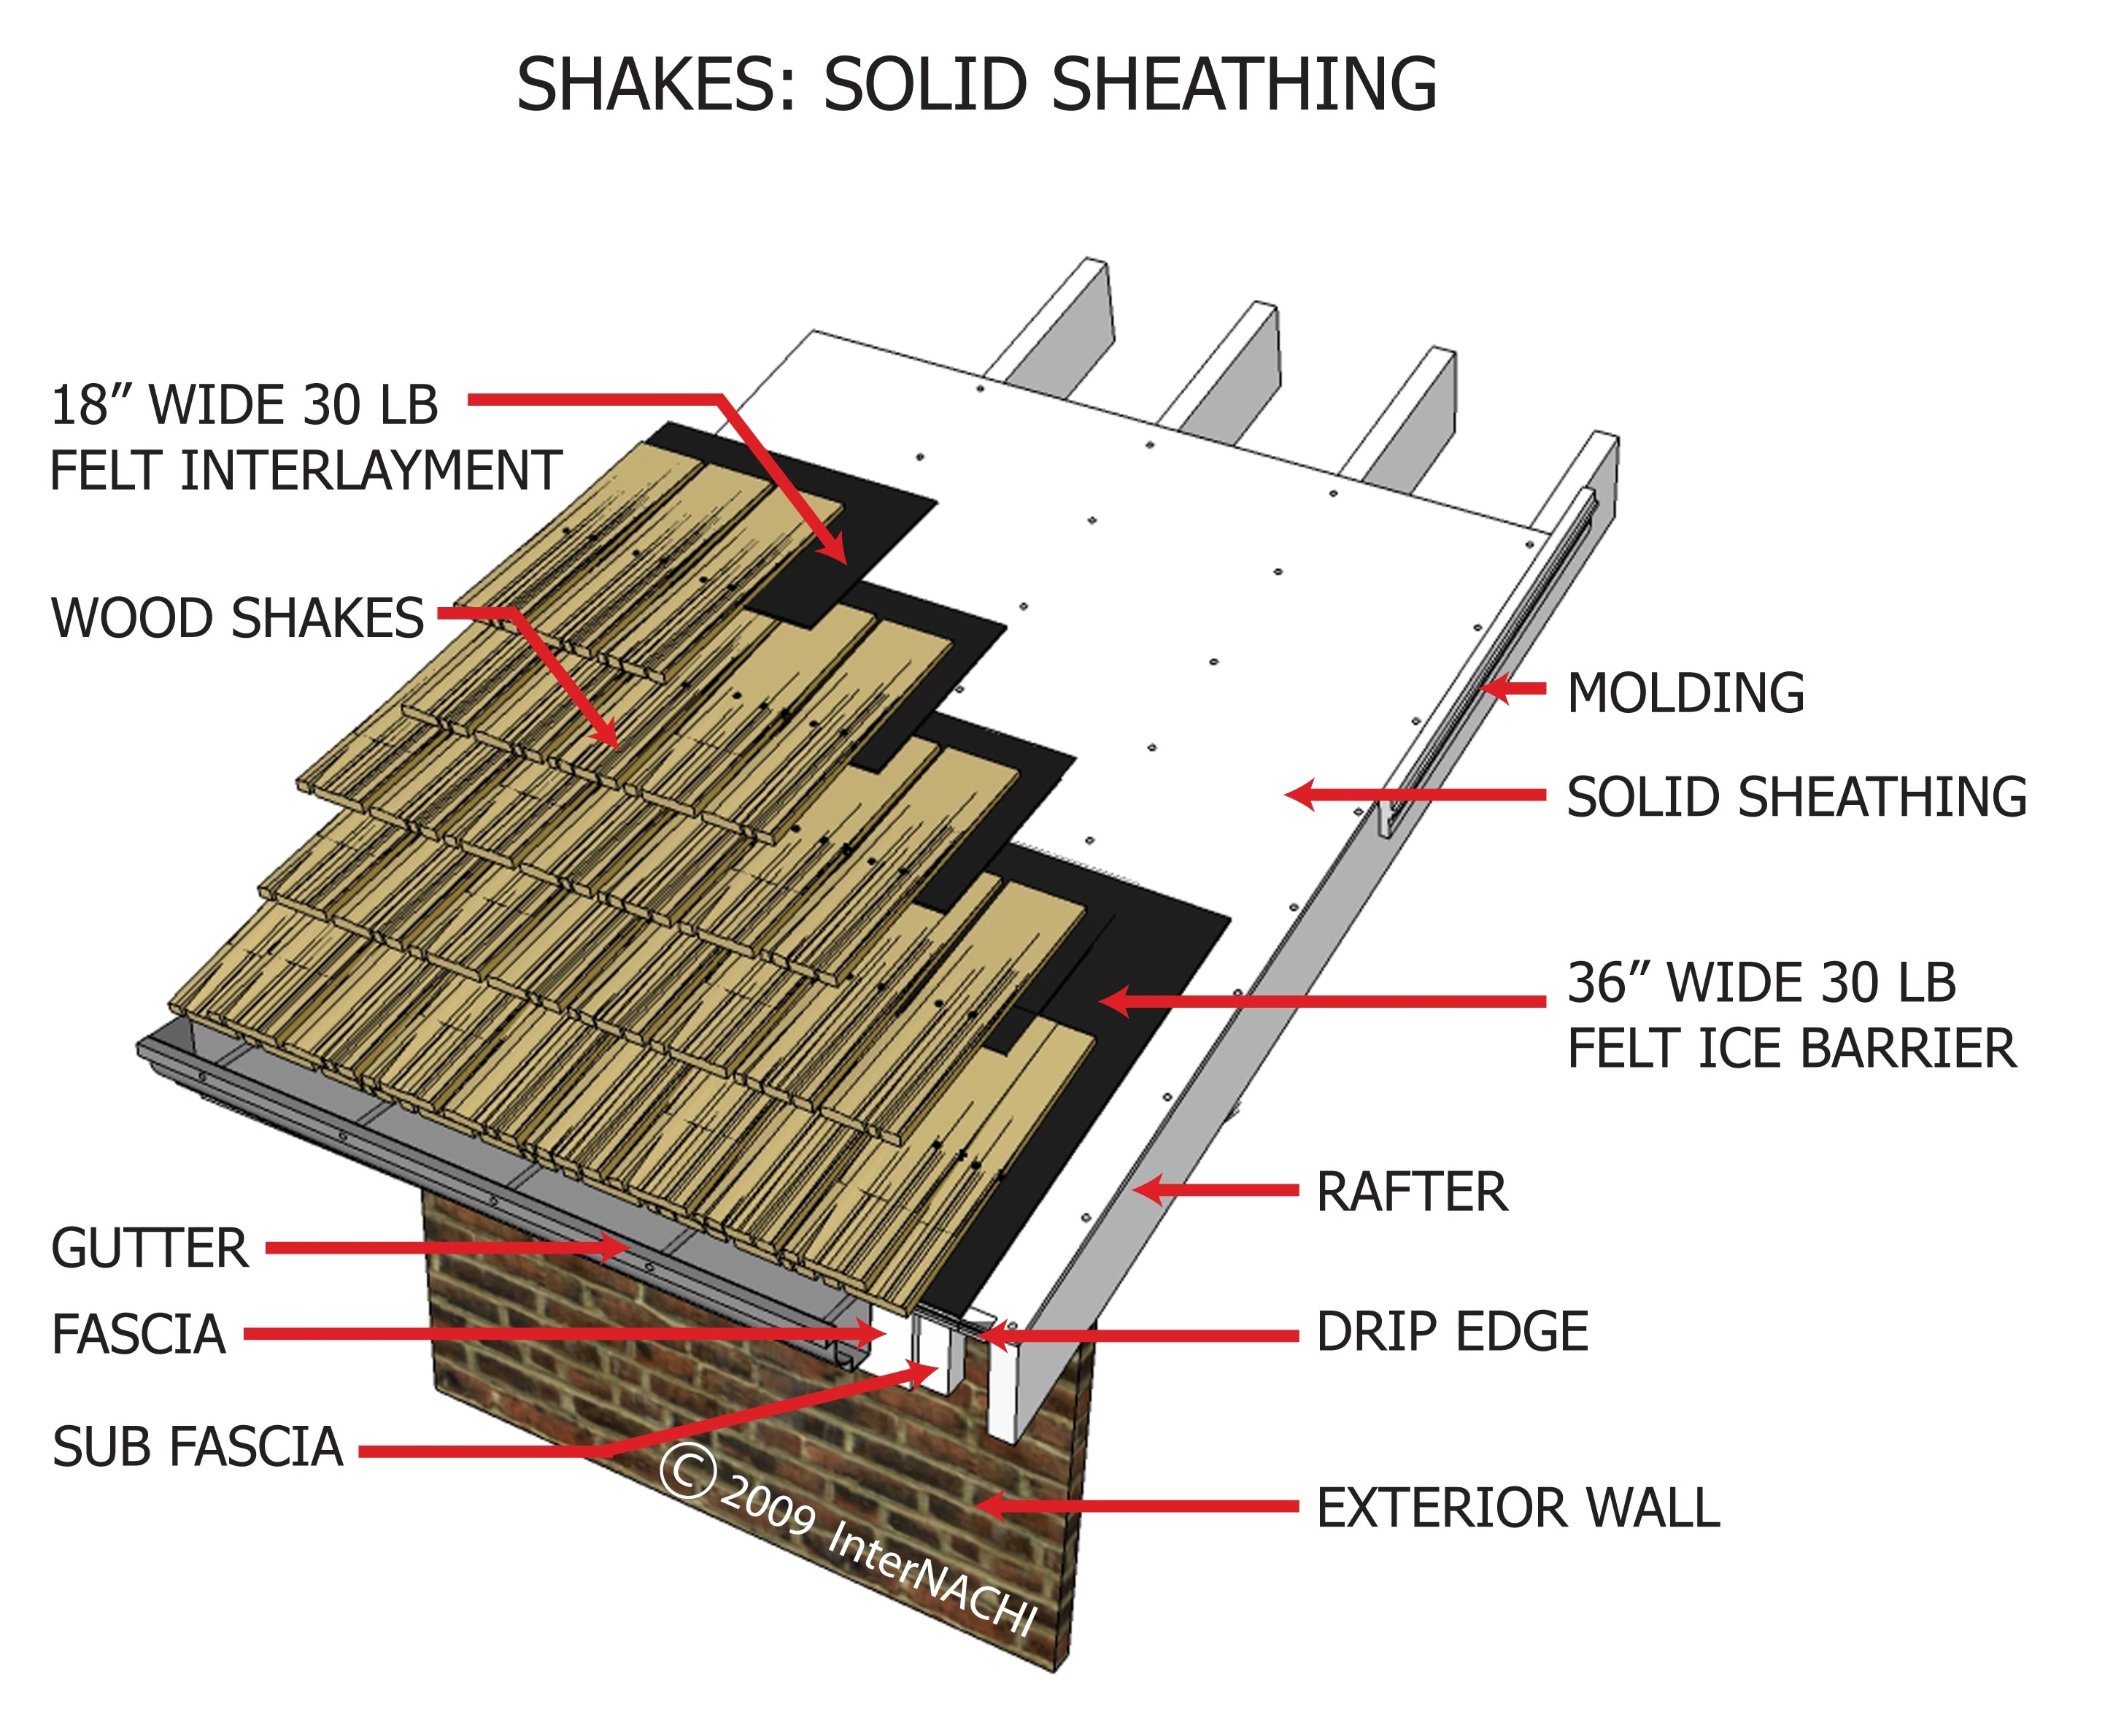 Shakes: solid sheating.